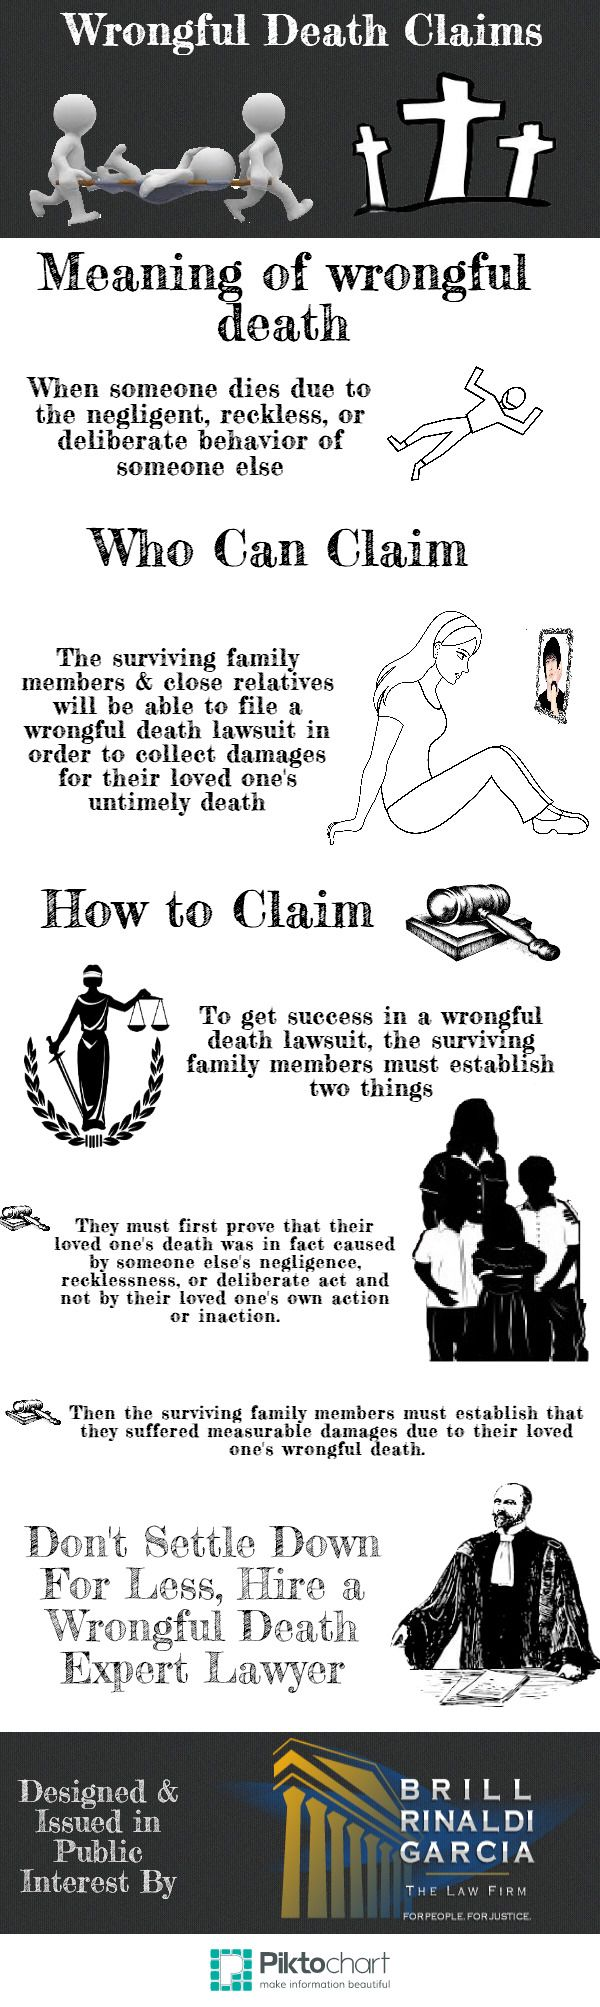 Wrongful Death Claims infographic - Who Can Claim; How to Claim   #law #infographic #wrongful #death #claims #who #how